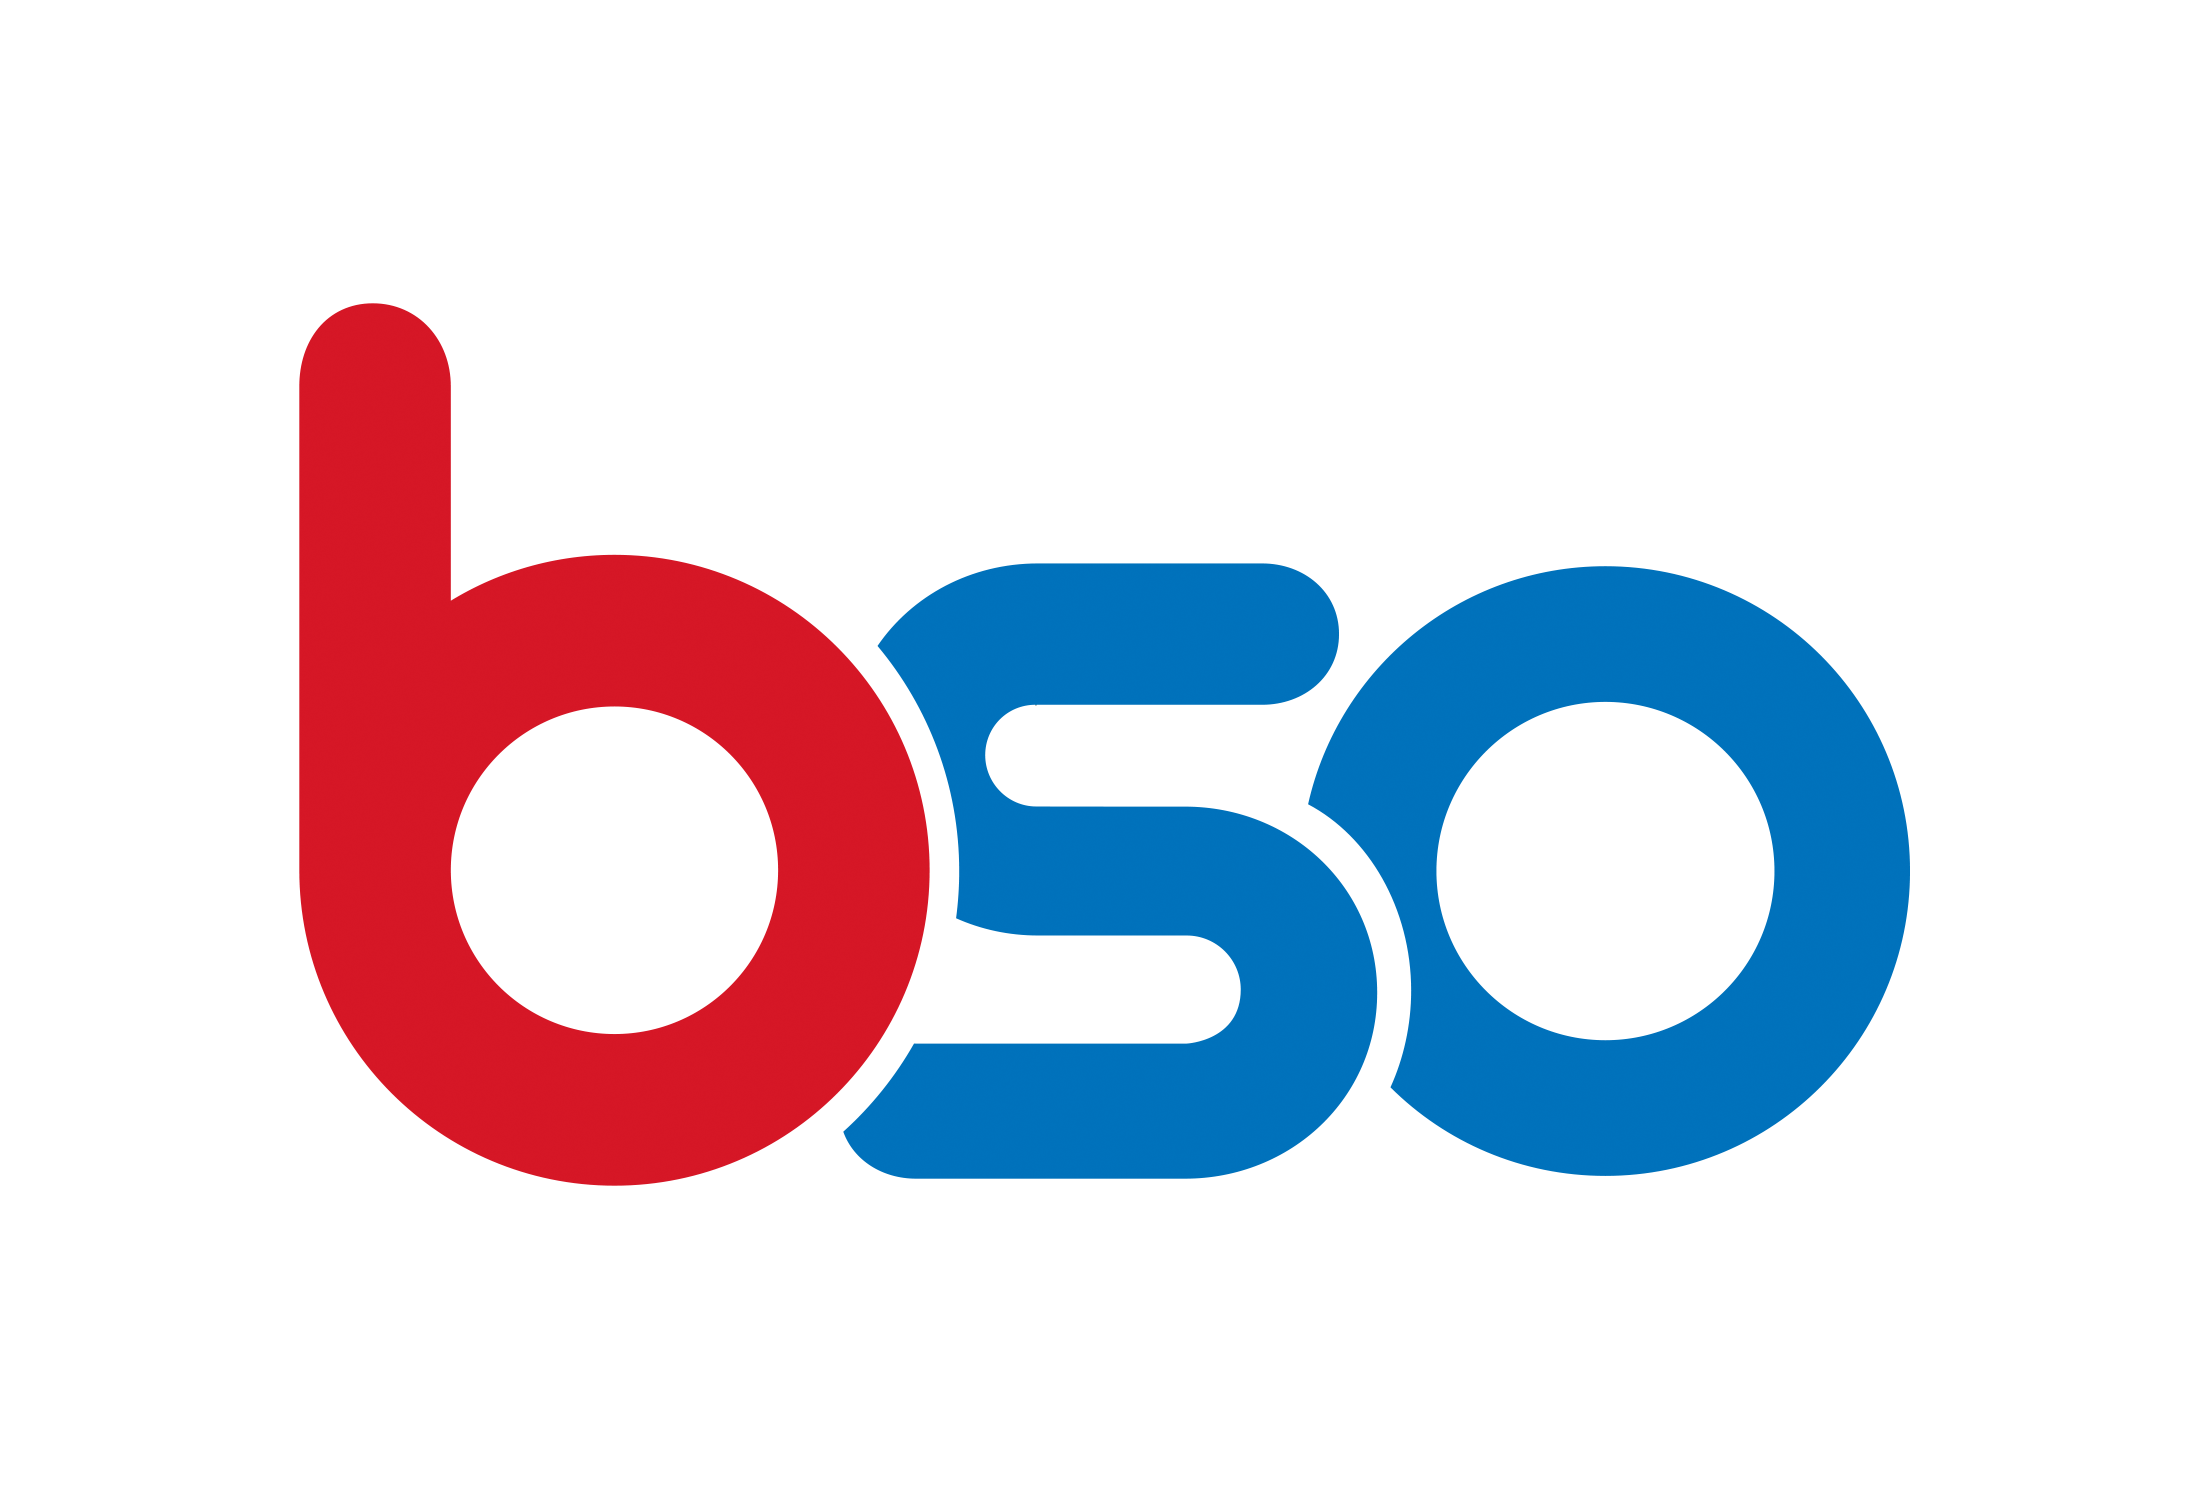 bso